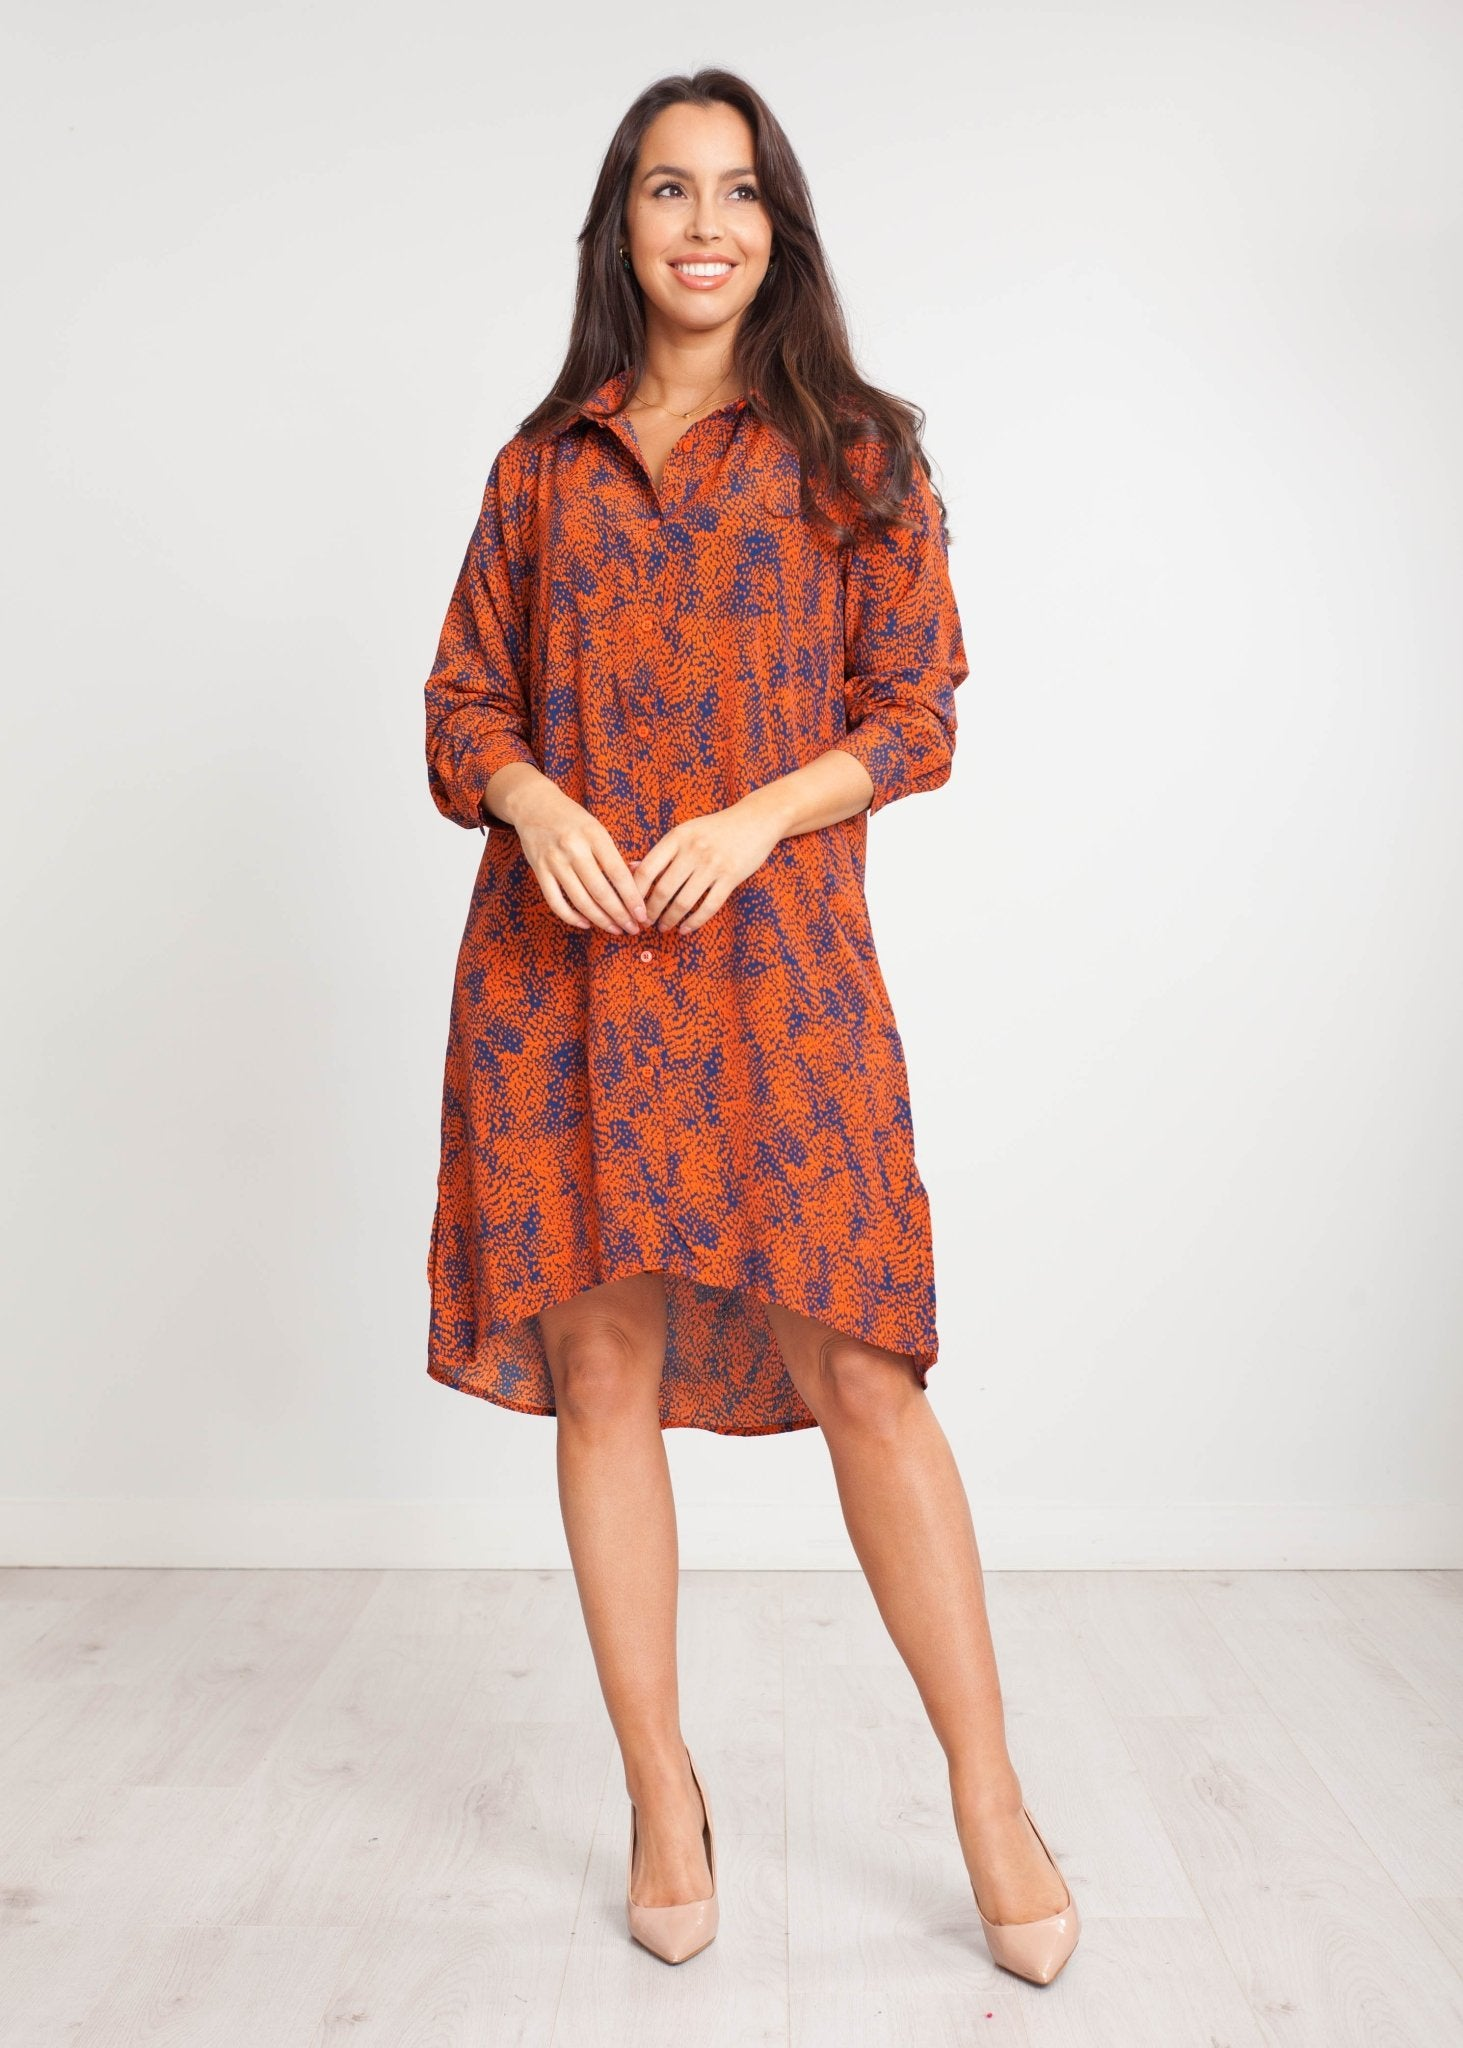 Priya Shirt Dress In Rust And Navy - The Walk in Wardrobe